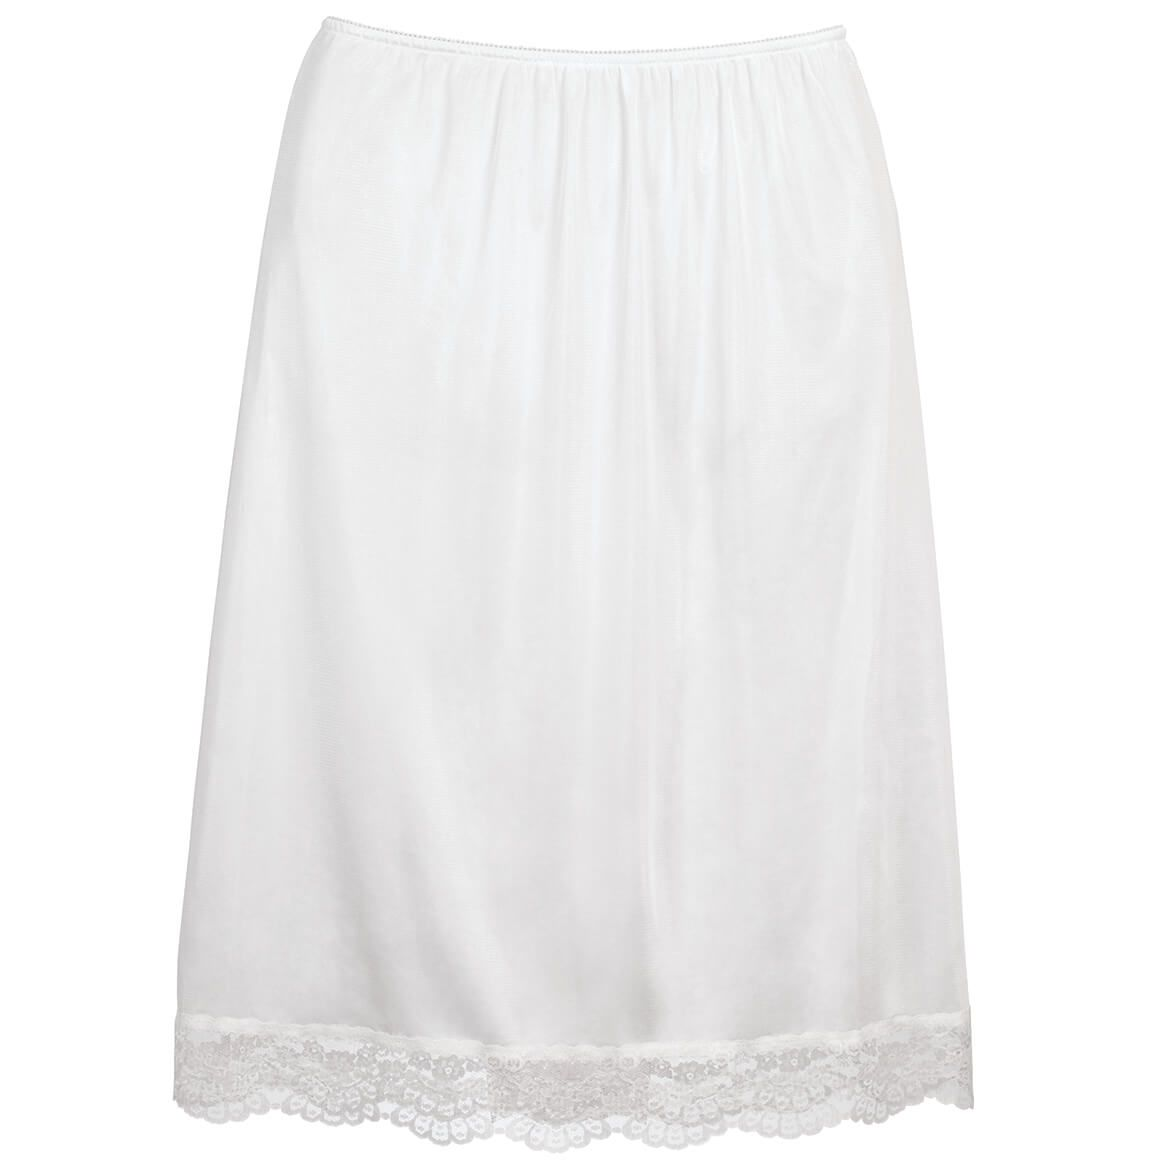 Easy Comforts Style™ Lace Trimmed Half Slip-371371